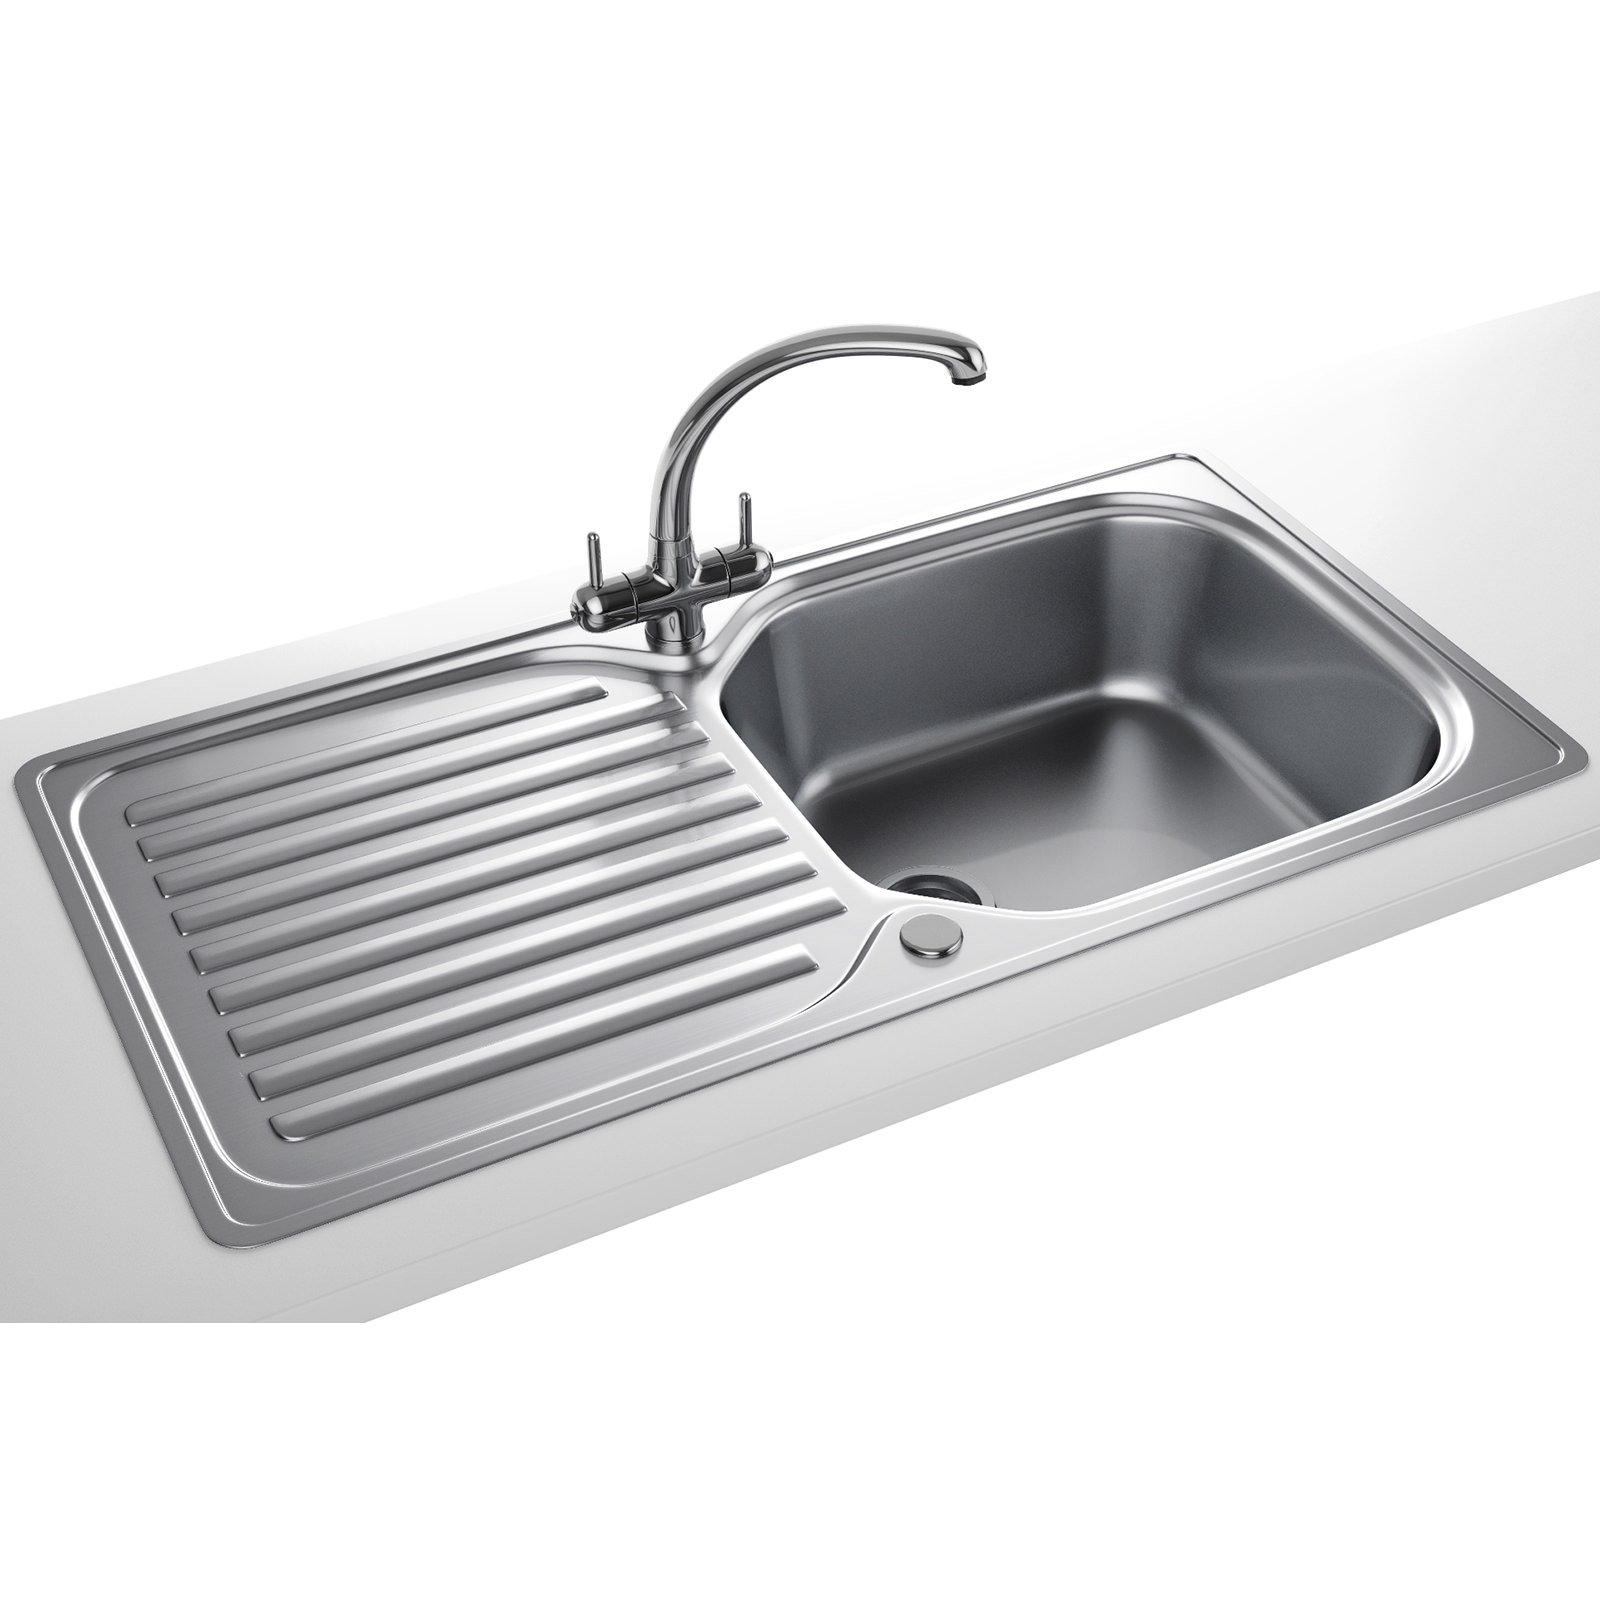 Franke Stainless Steel : Franke Elba Propack ELN 611 96 Stainless Steel Kitchen Sink And Tap